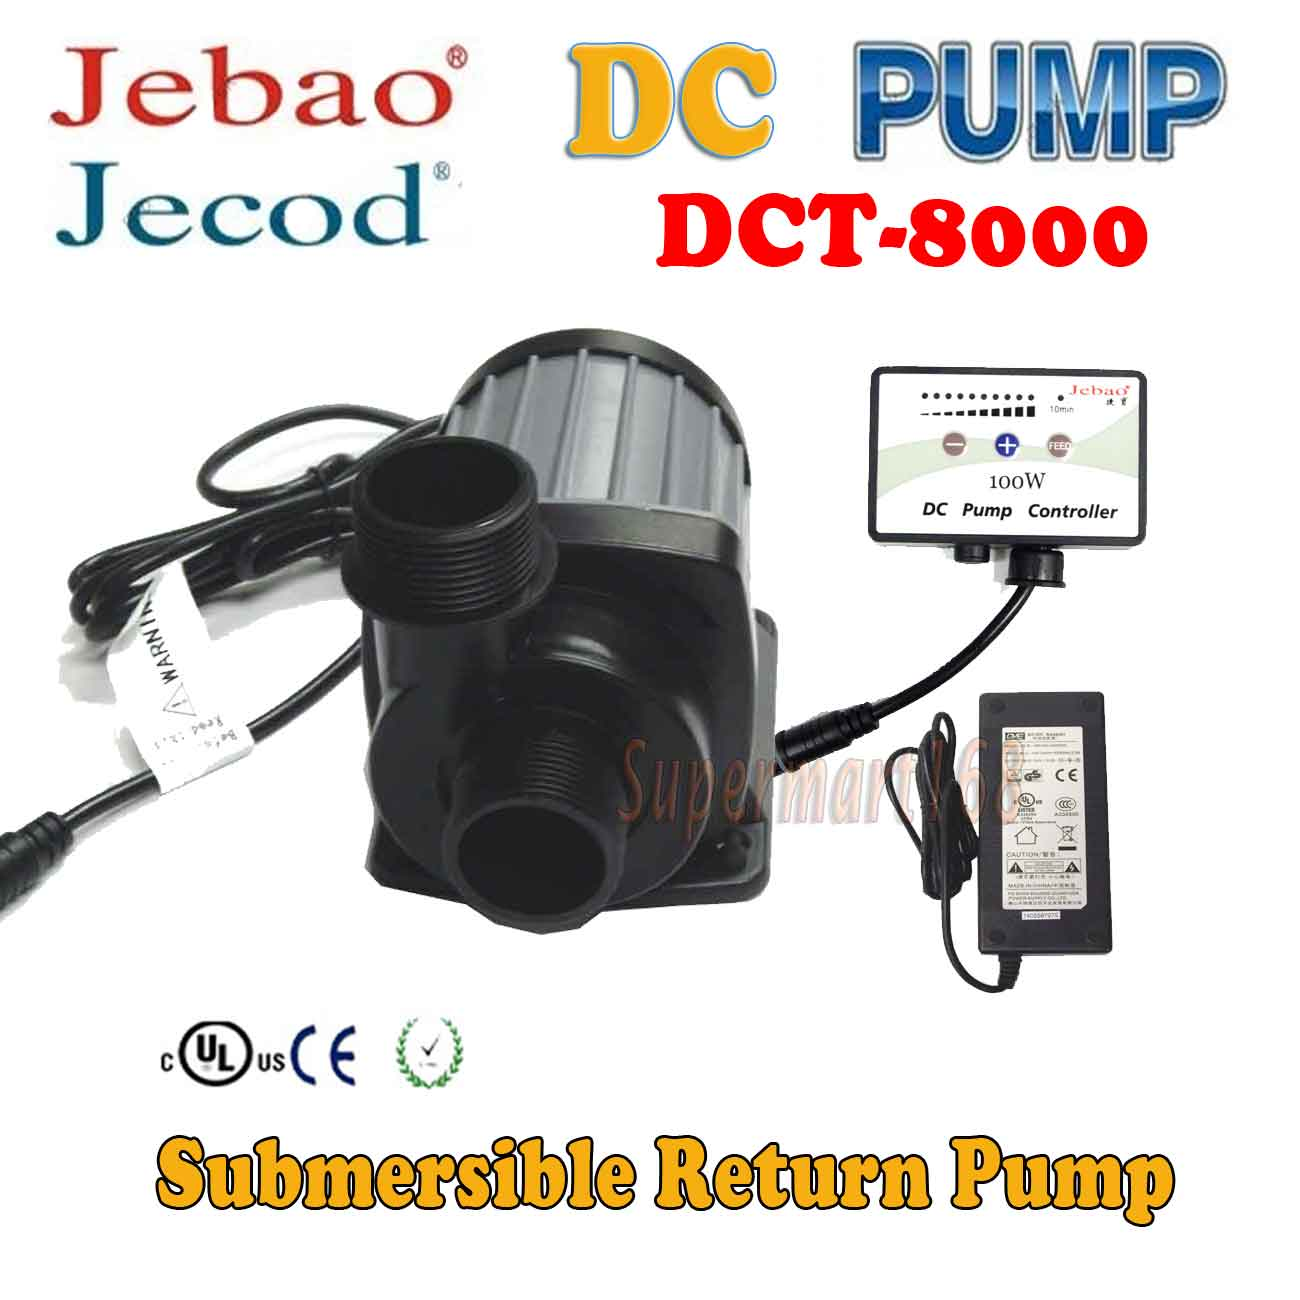 Jebao/Jecod Circulation Pump  DC DCT-8000 for Reef Tank S...